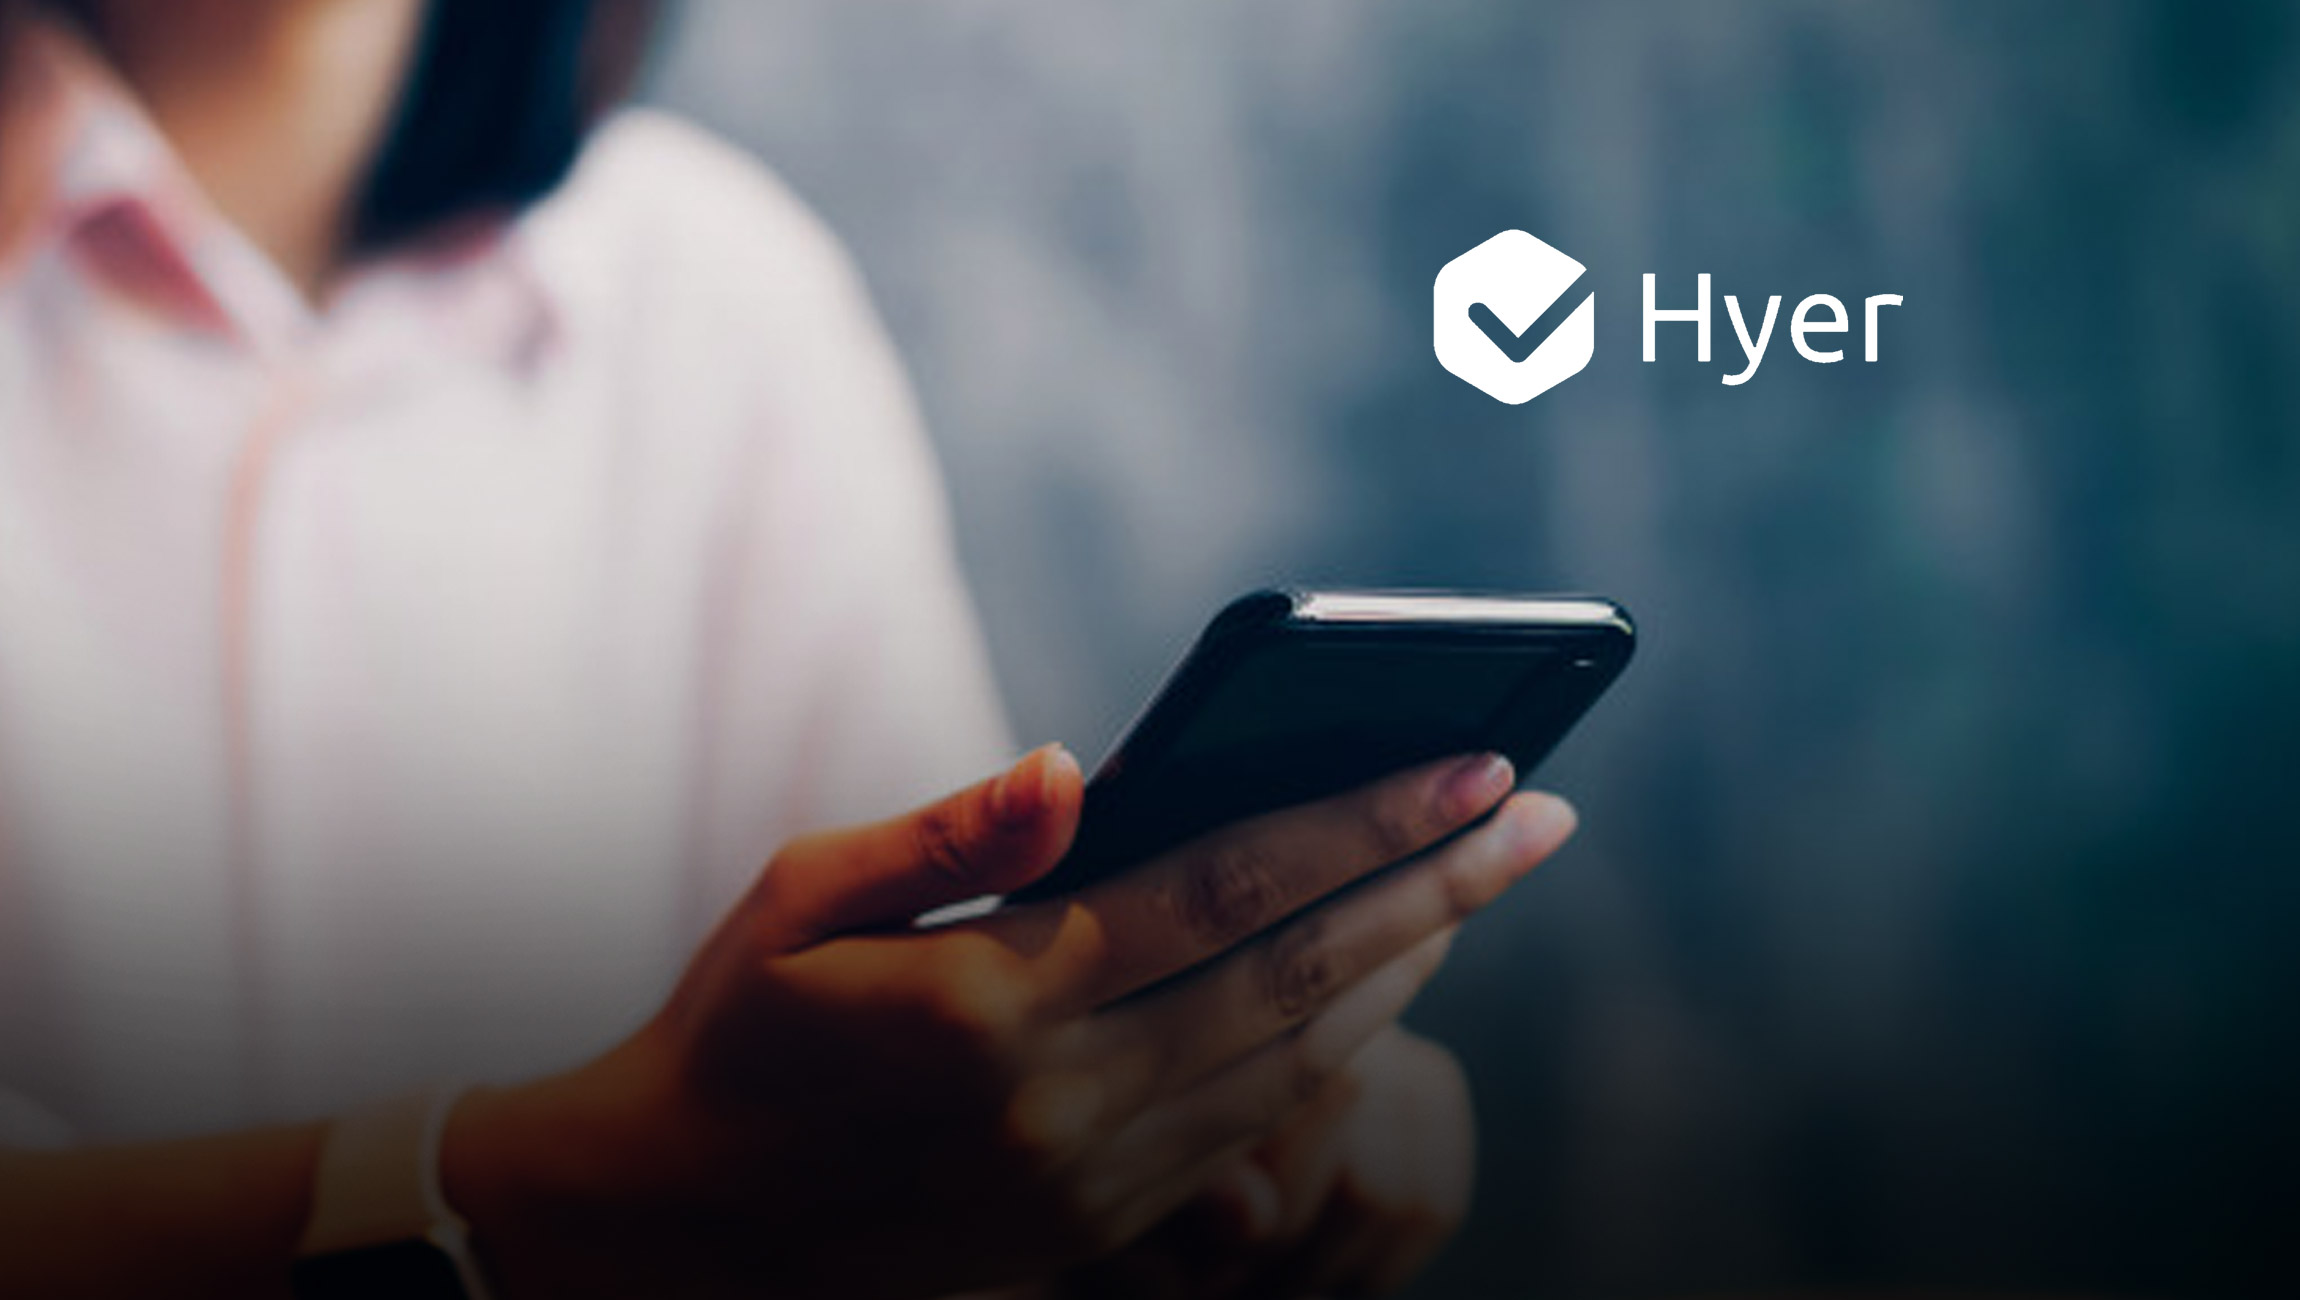 How the Hyer App Is Answering Calls for Help